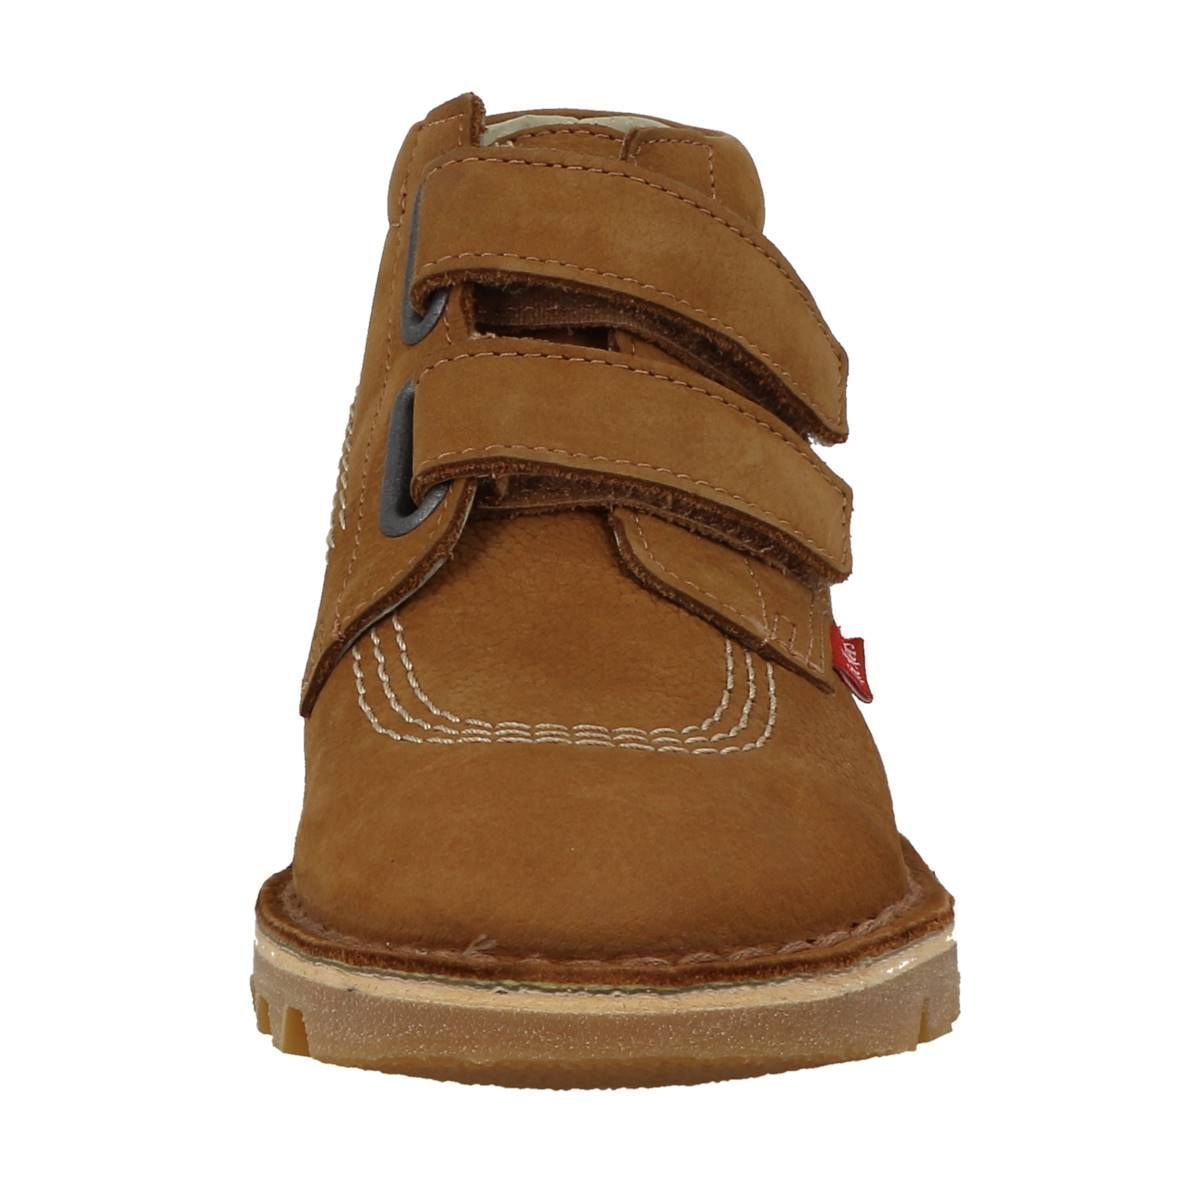 Kickers fille neovelcro camel1157801_4